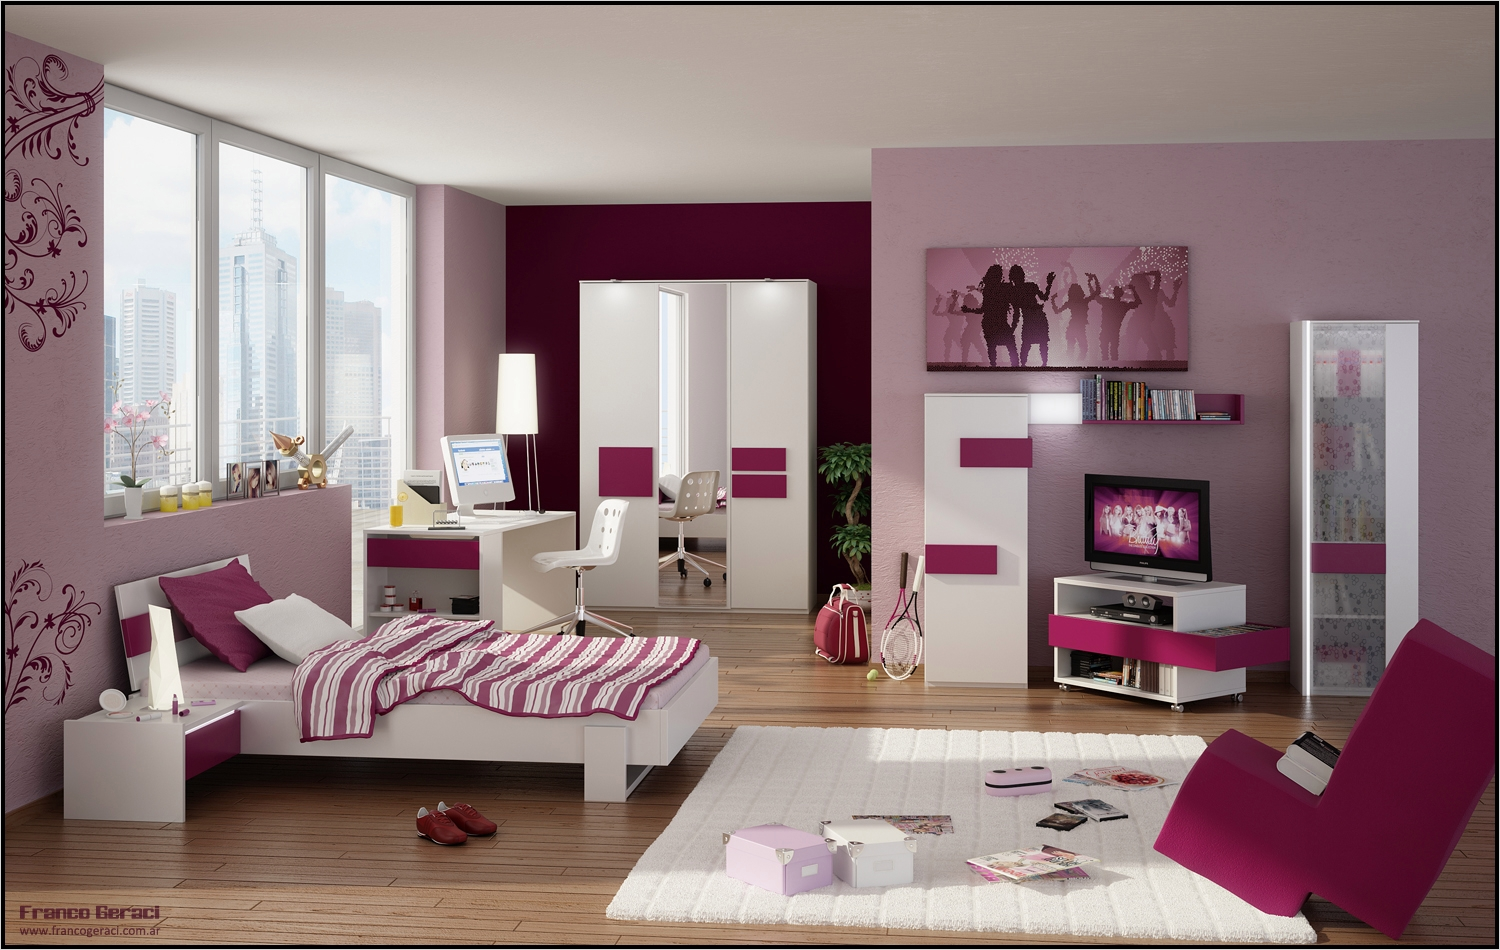 42 Stylish Bedrooms for Teenage Girls 59 Funky Trendy and Very Stylish Teenage Room Designs 5